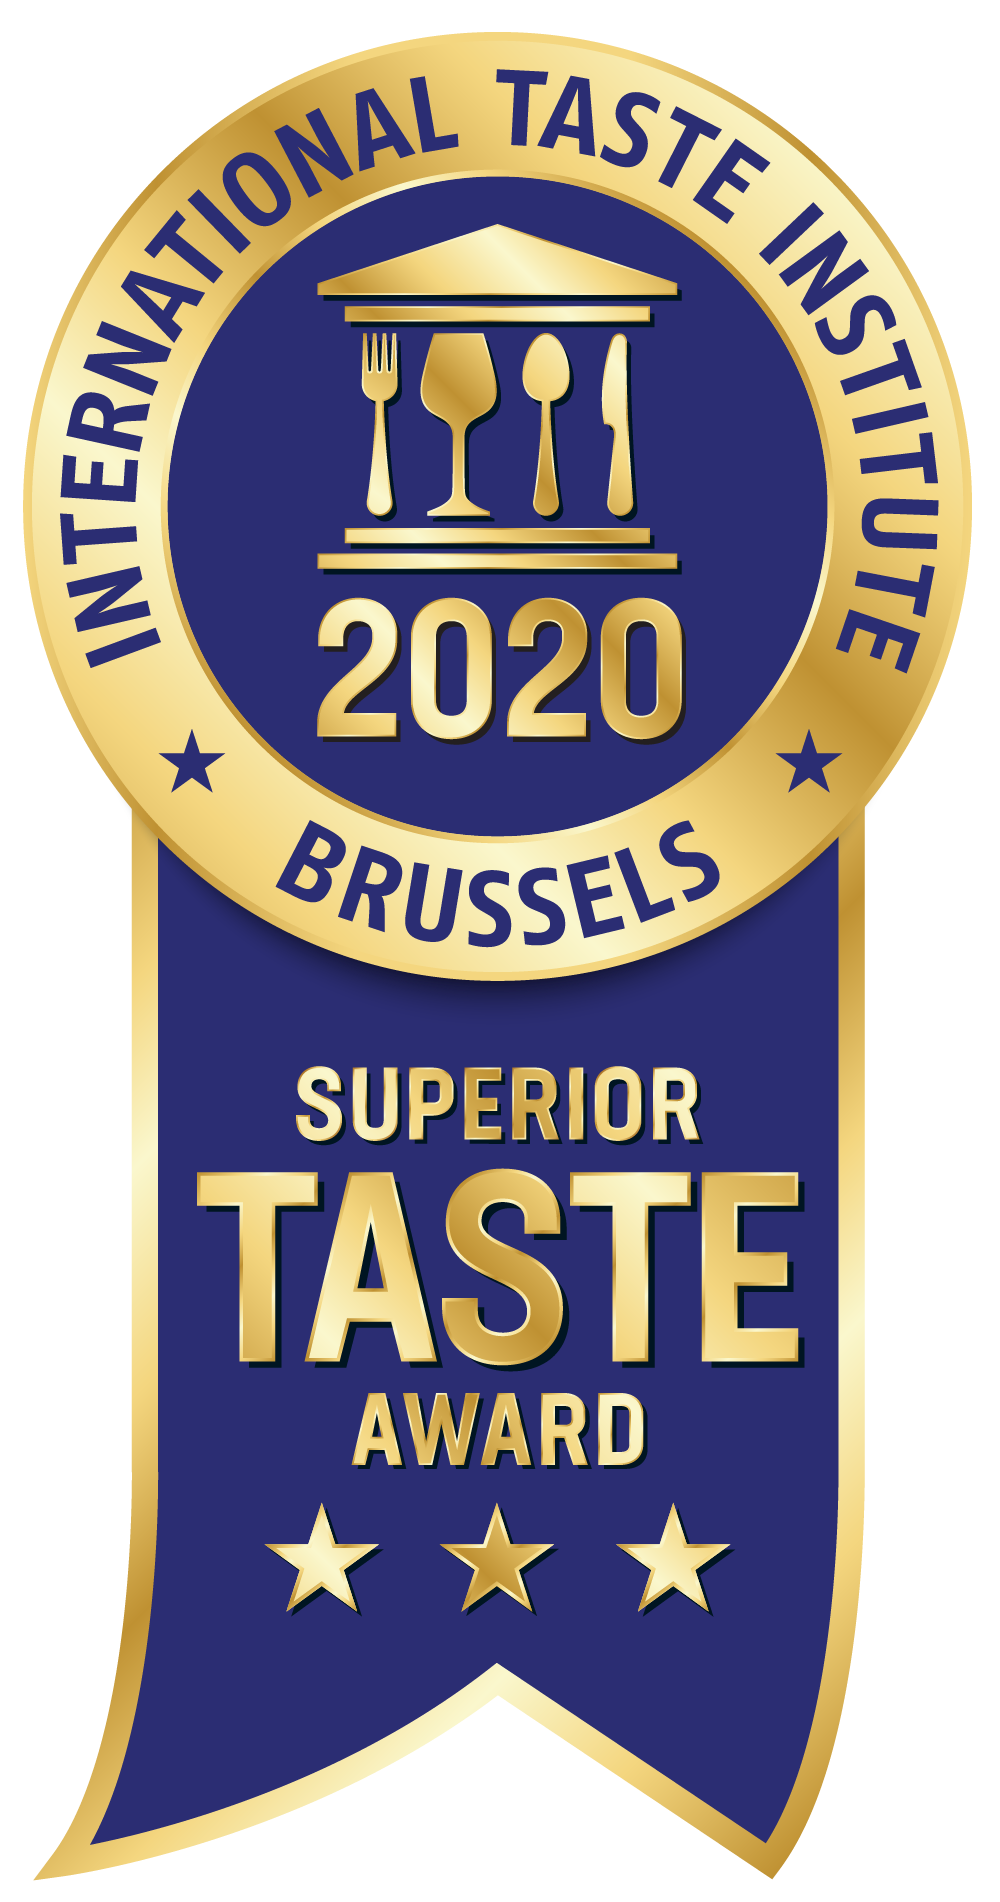 International Taste Institute, Superior Taste Award